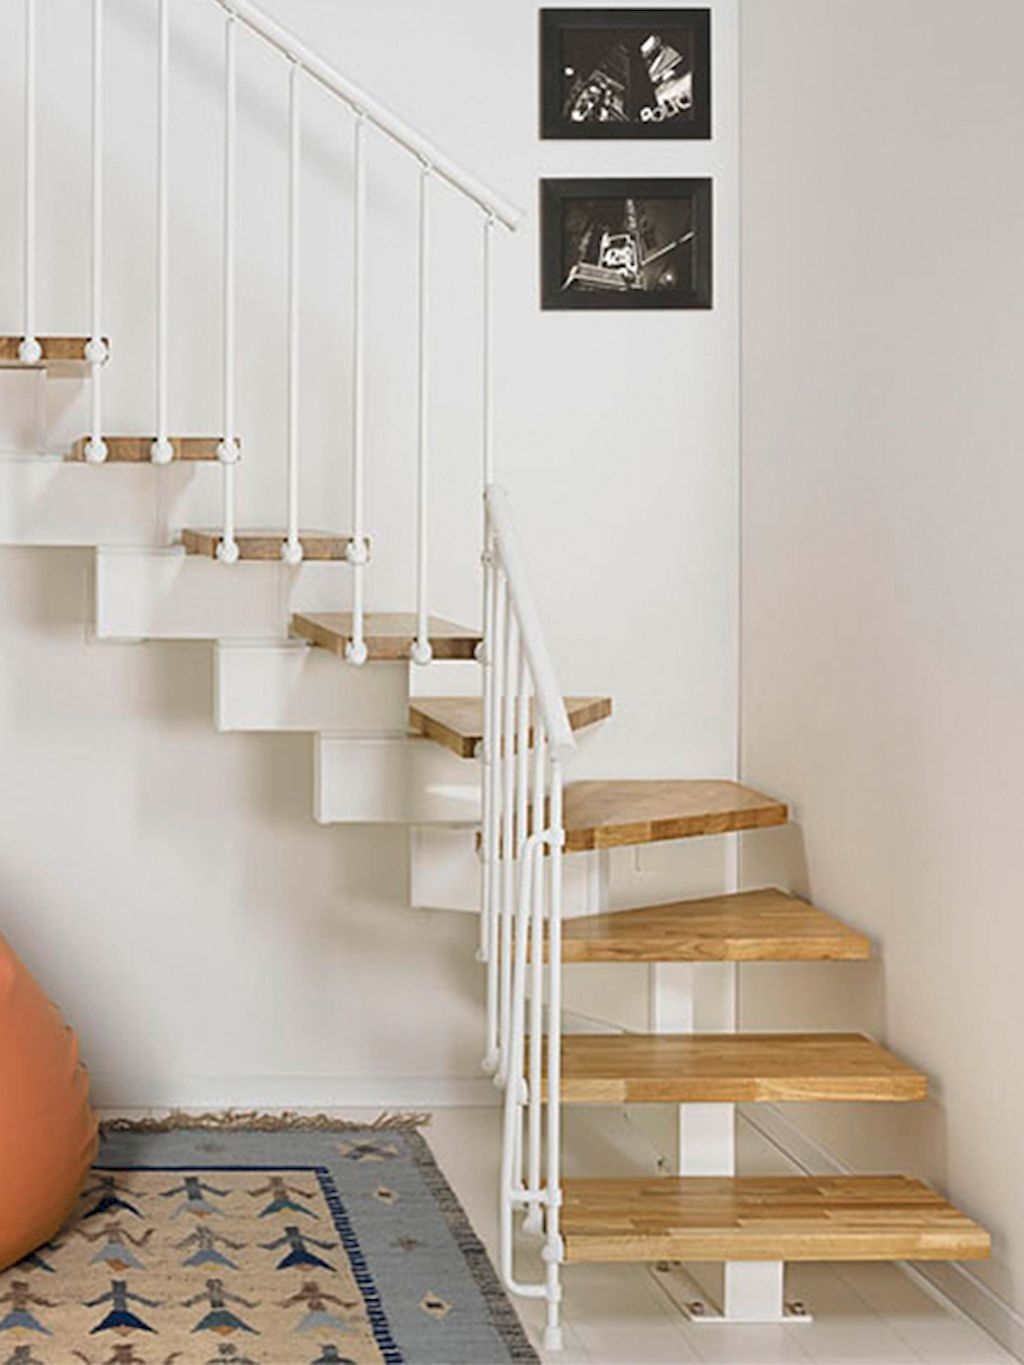 79 Awesome Loft Stair with Space Saving Ideas   Page 24 of ...